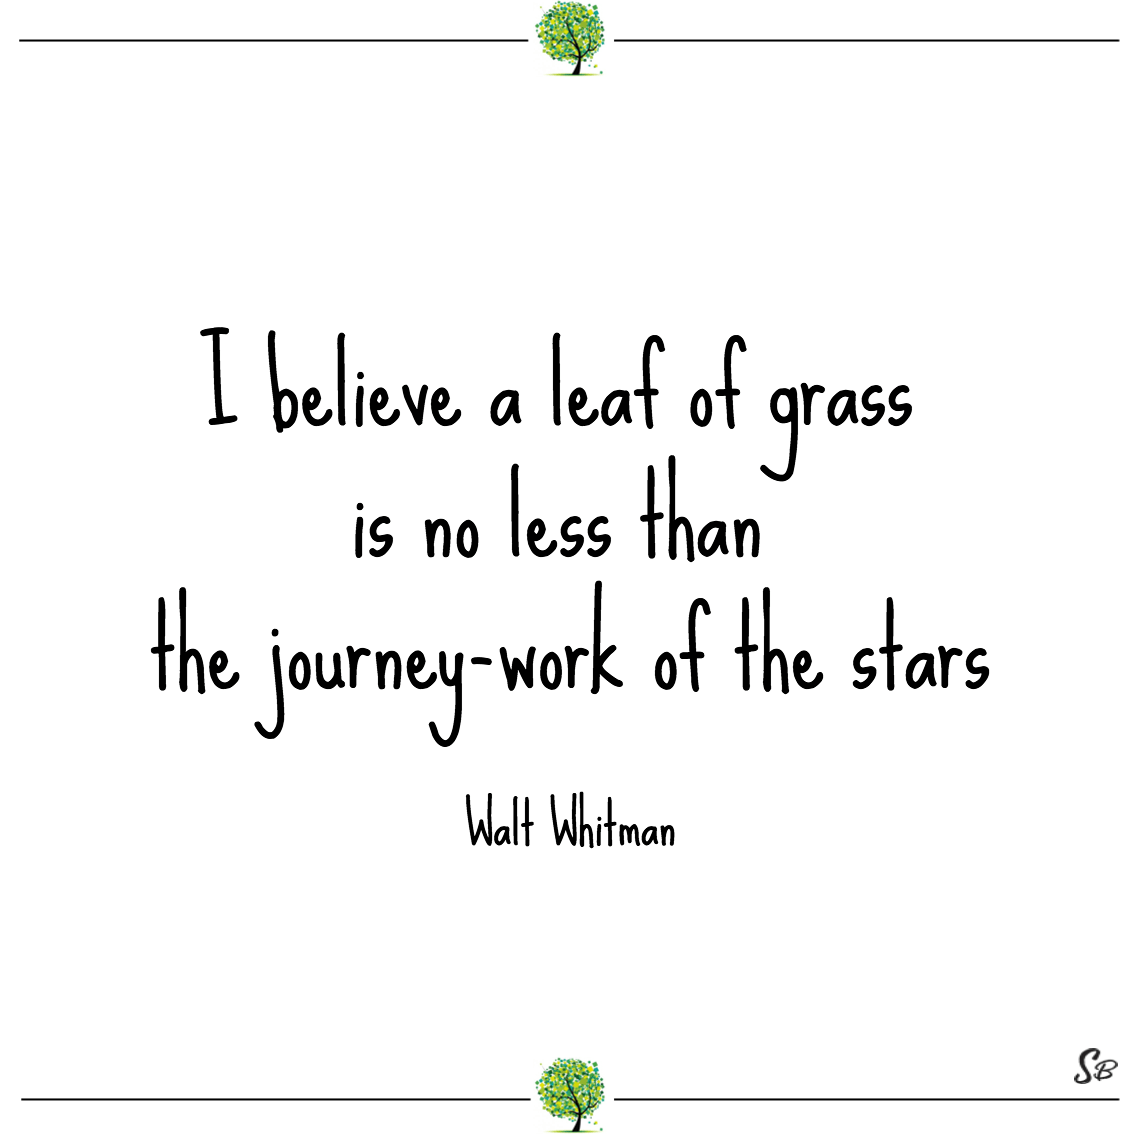 I believe a leaf of grass is no less than the journey work of the stars walt whitman